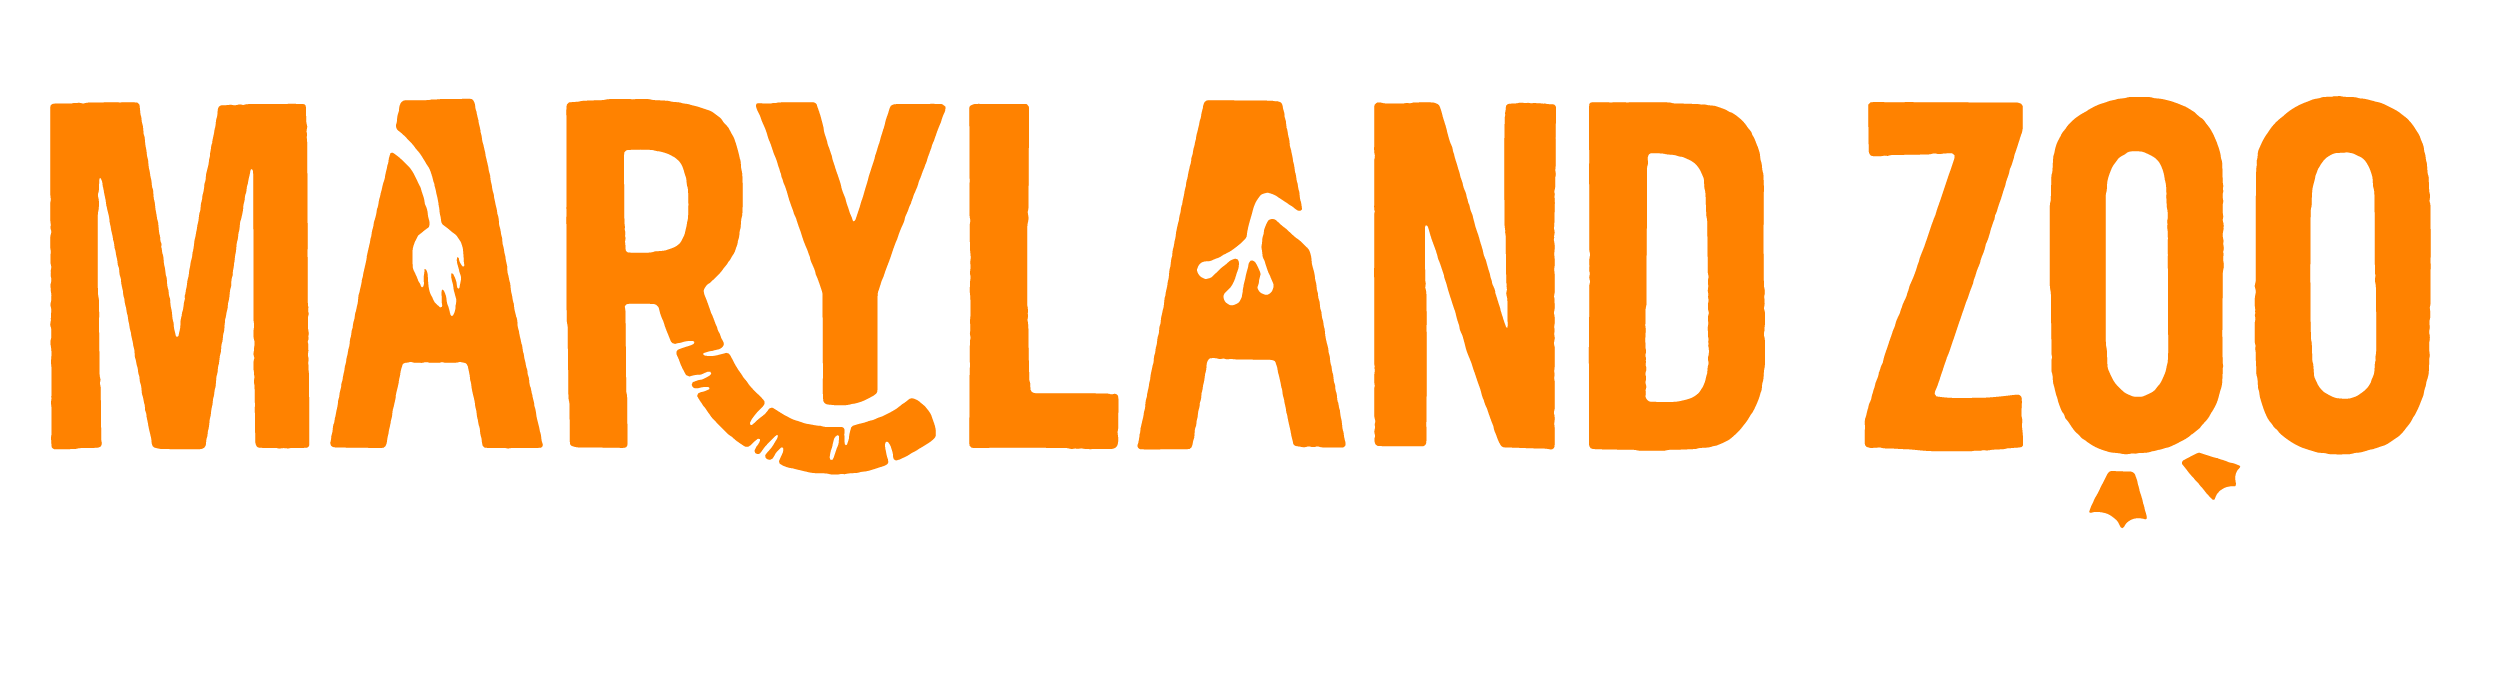 Job Information: THE MARYLAND ZOO - PRESIDENT/ CEO Job